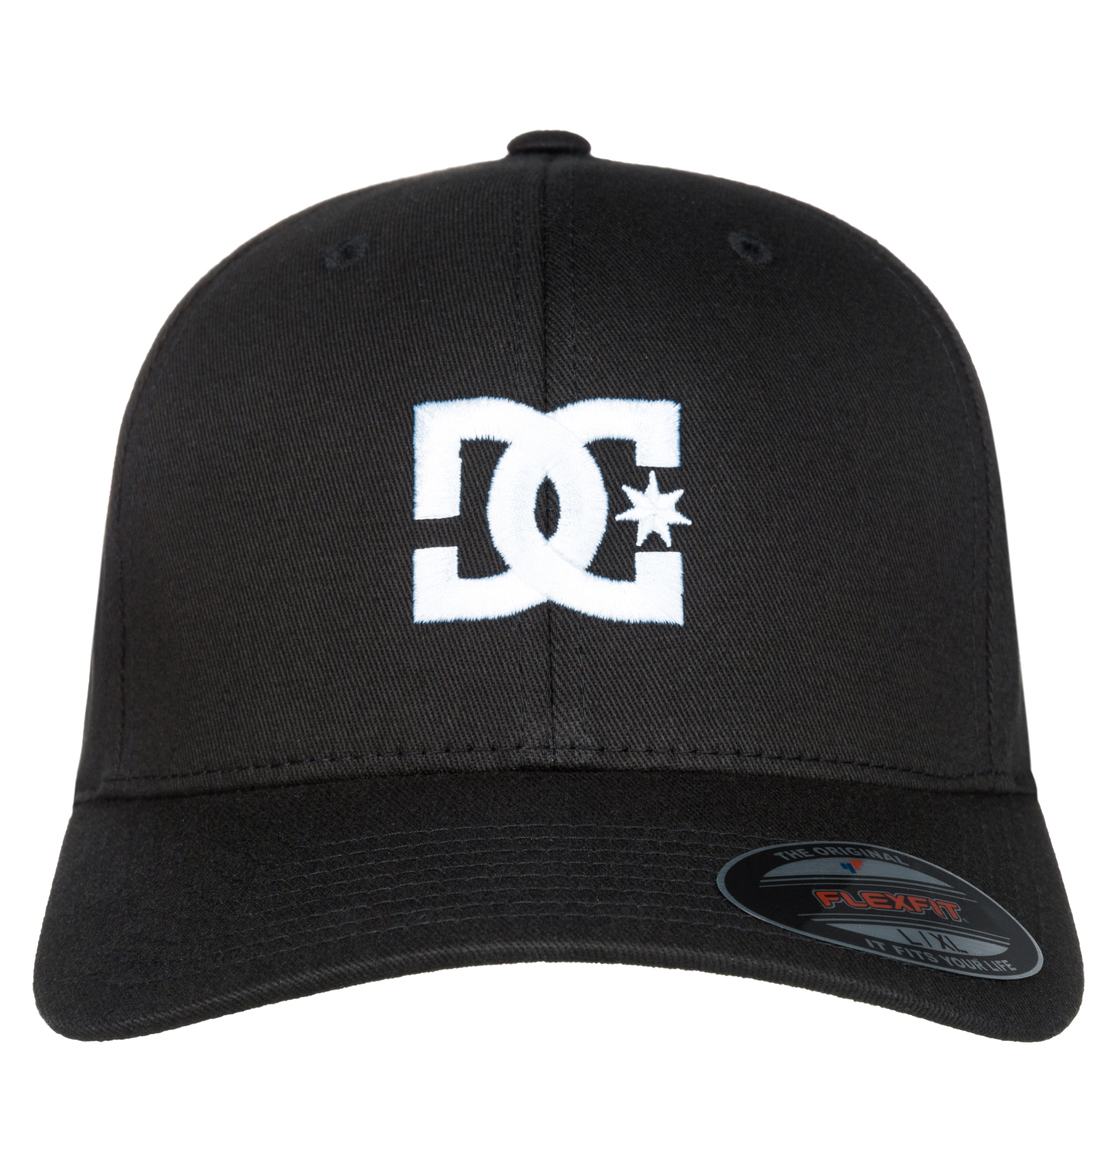 47c0c52b74bd3 1 Cap Star 2 Flexfit Hat Black 55300096 DC Shoes